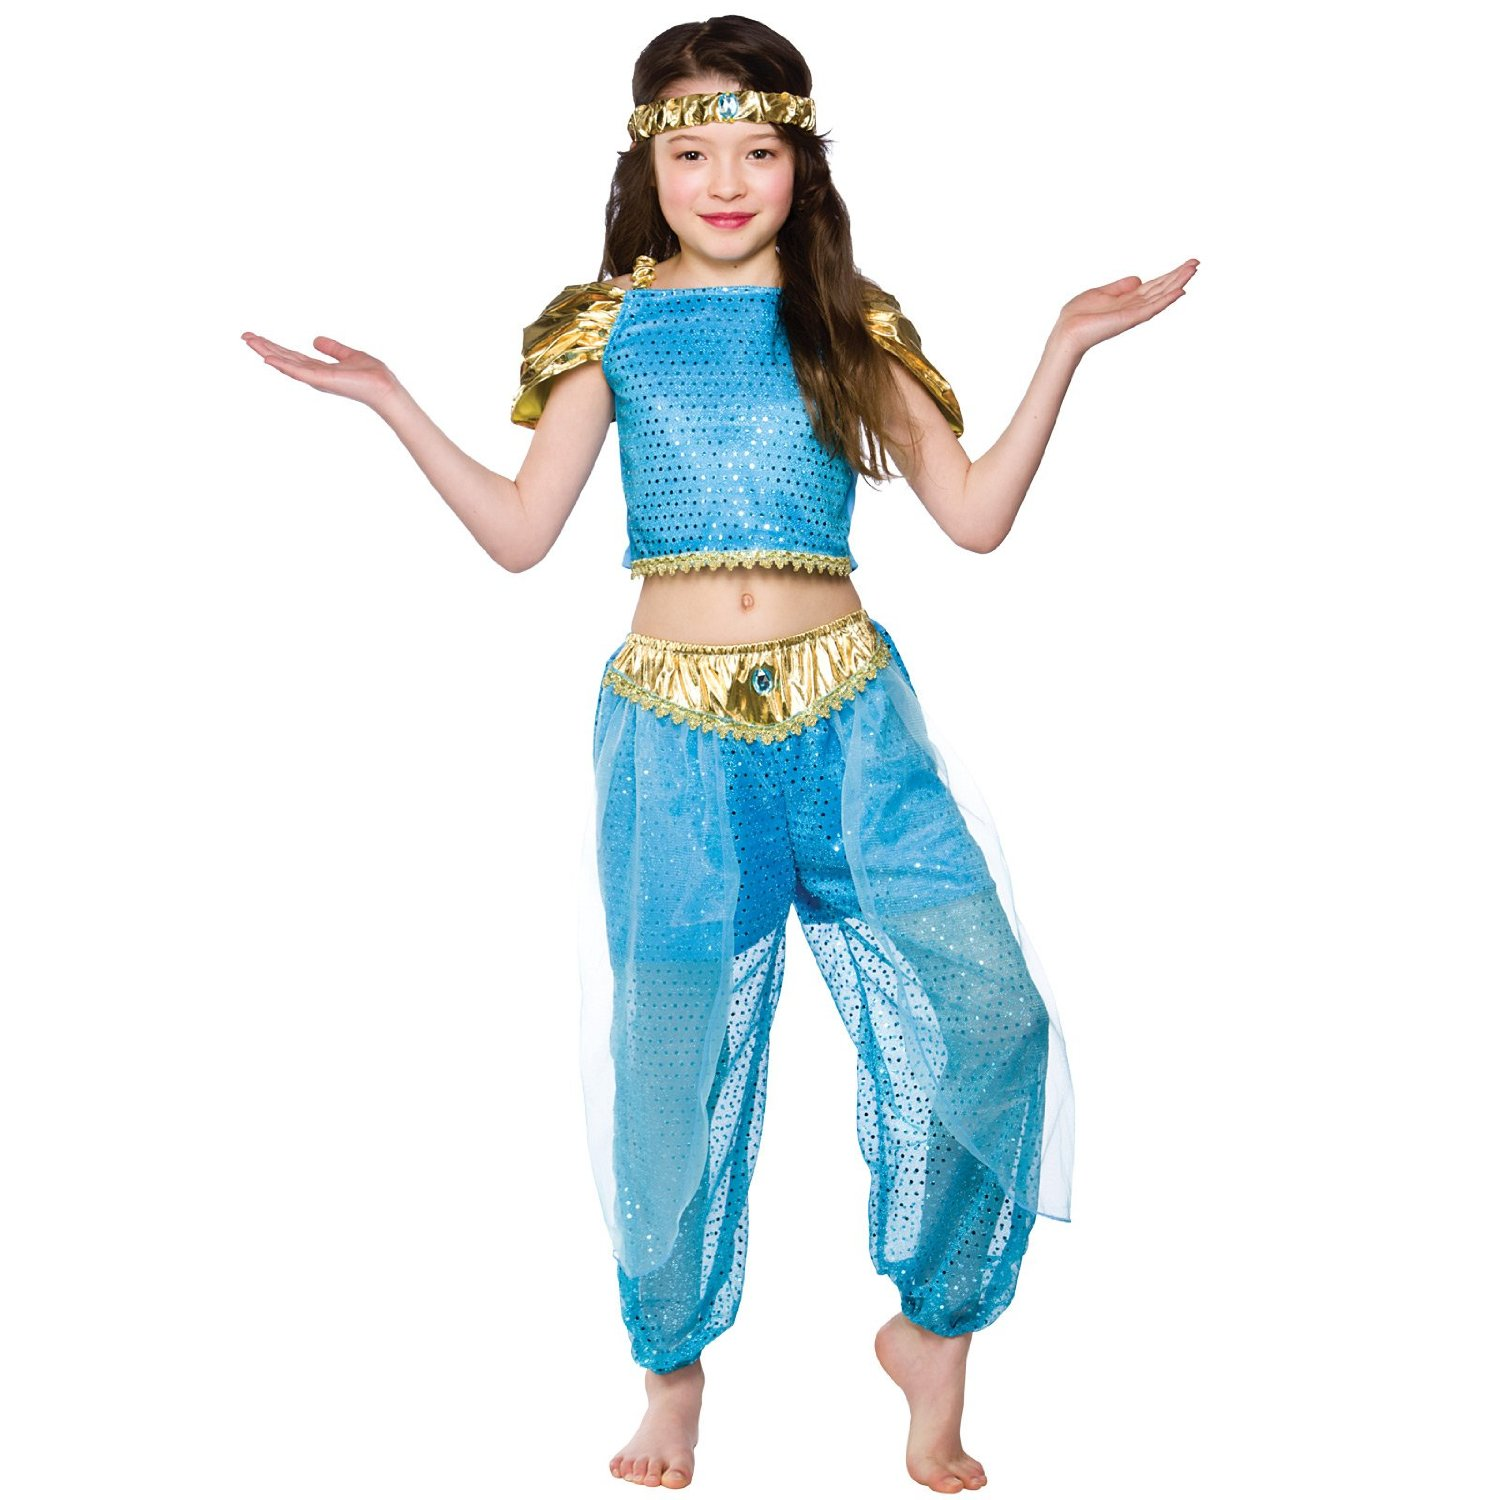 Halloween Costumes For Kids Girls 9 And Up.Buy Girls Arabian Princess Costume Fancy Dress Up Party